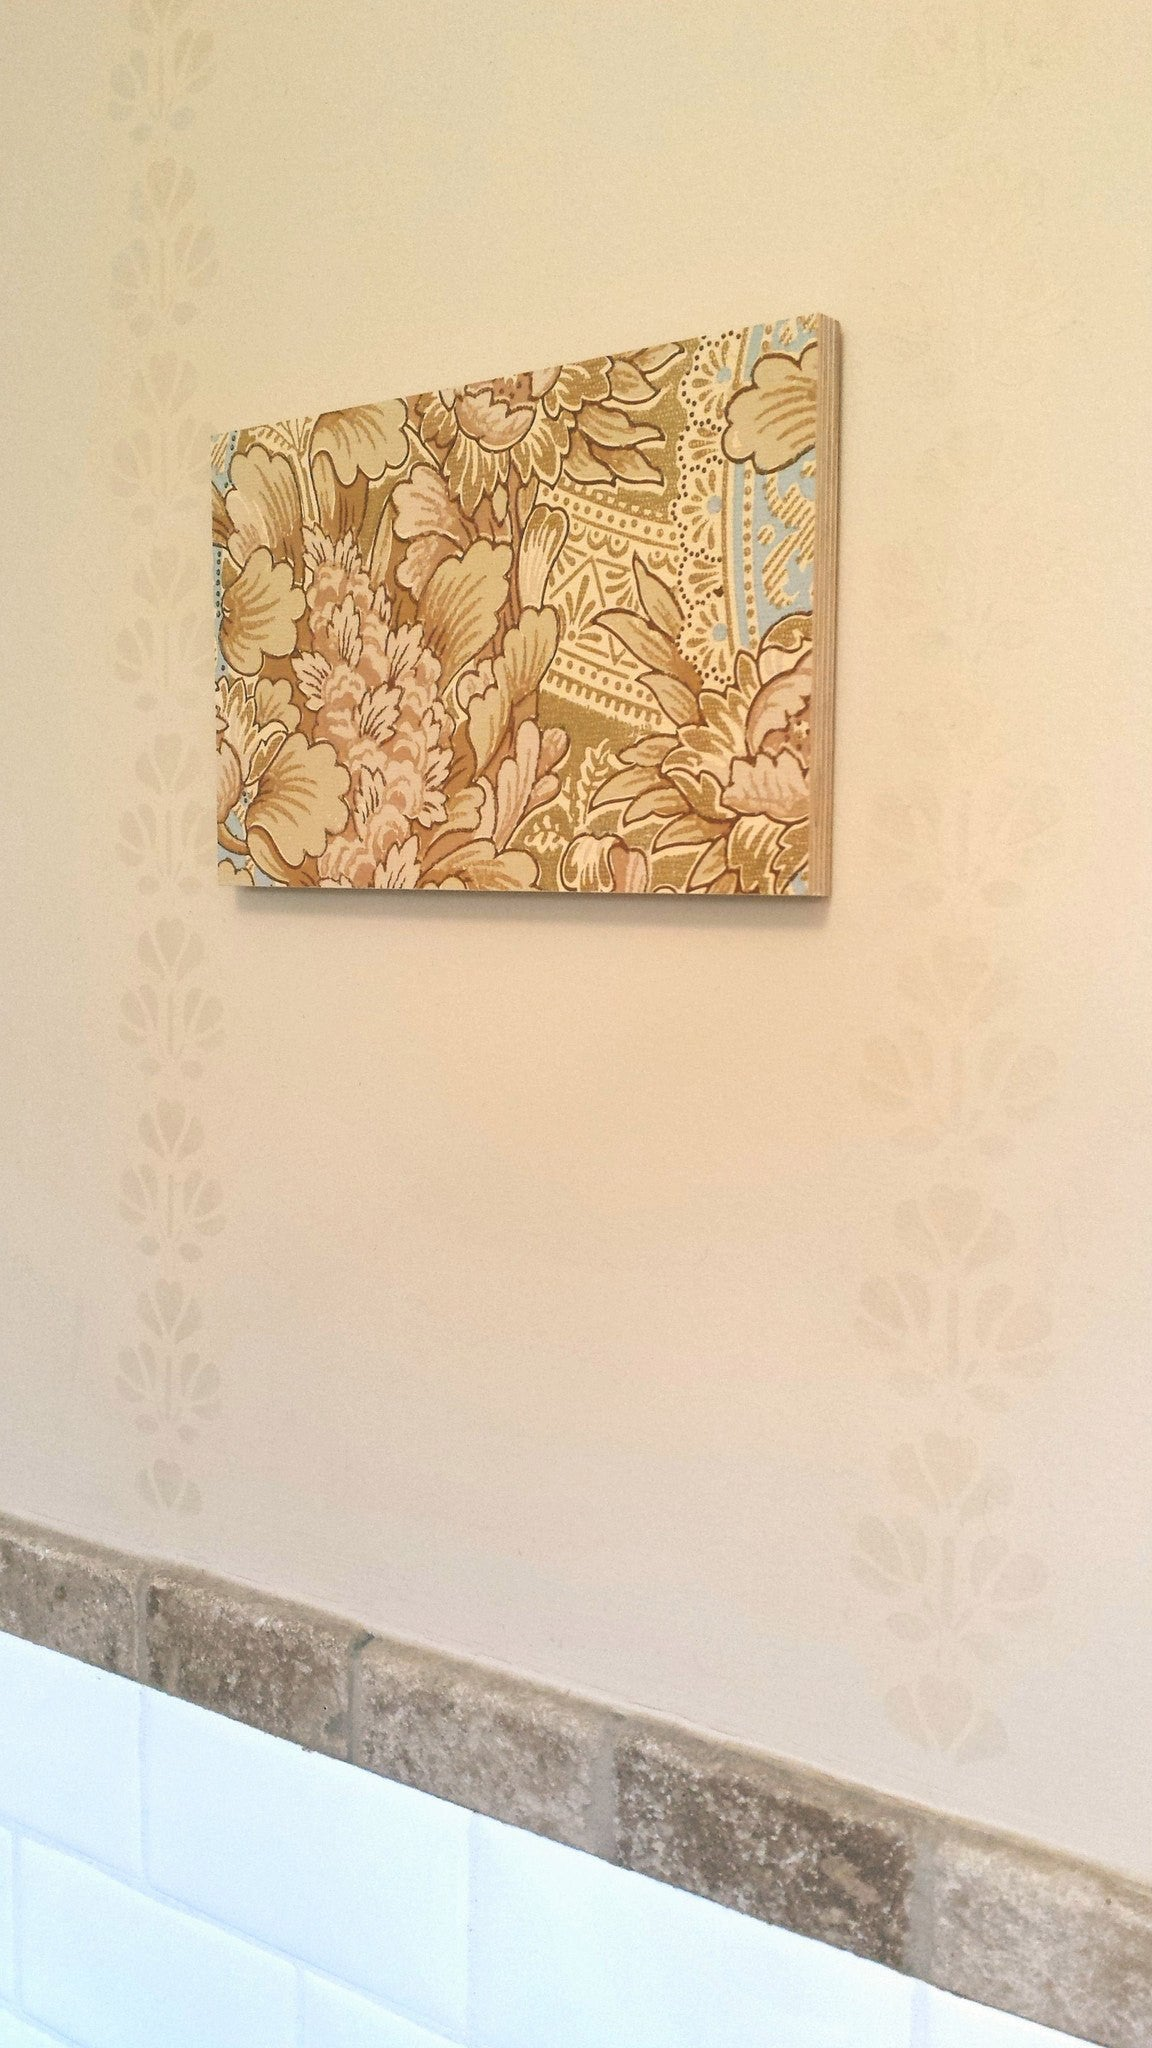 Aesthetic Era Gilt Floral - Mounted Antique Wallpaper Panel-Sold